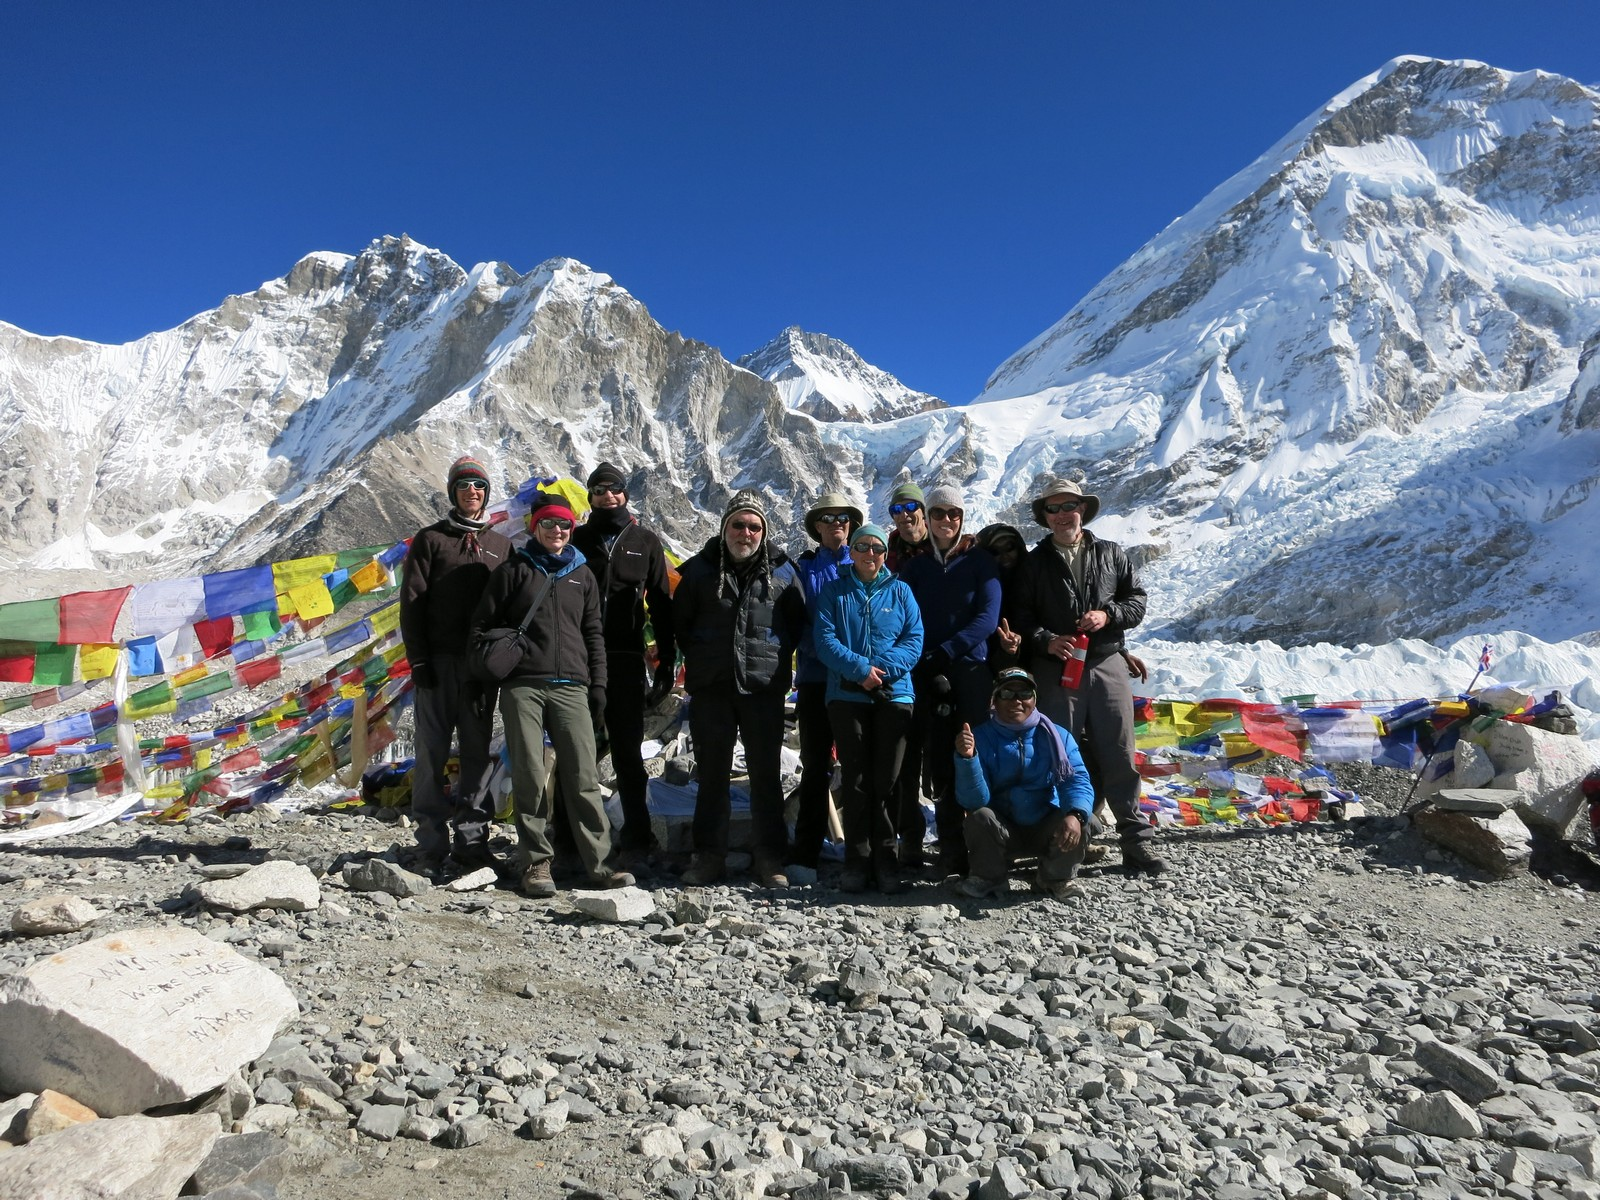 Everest Base Camp Tour information